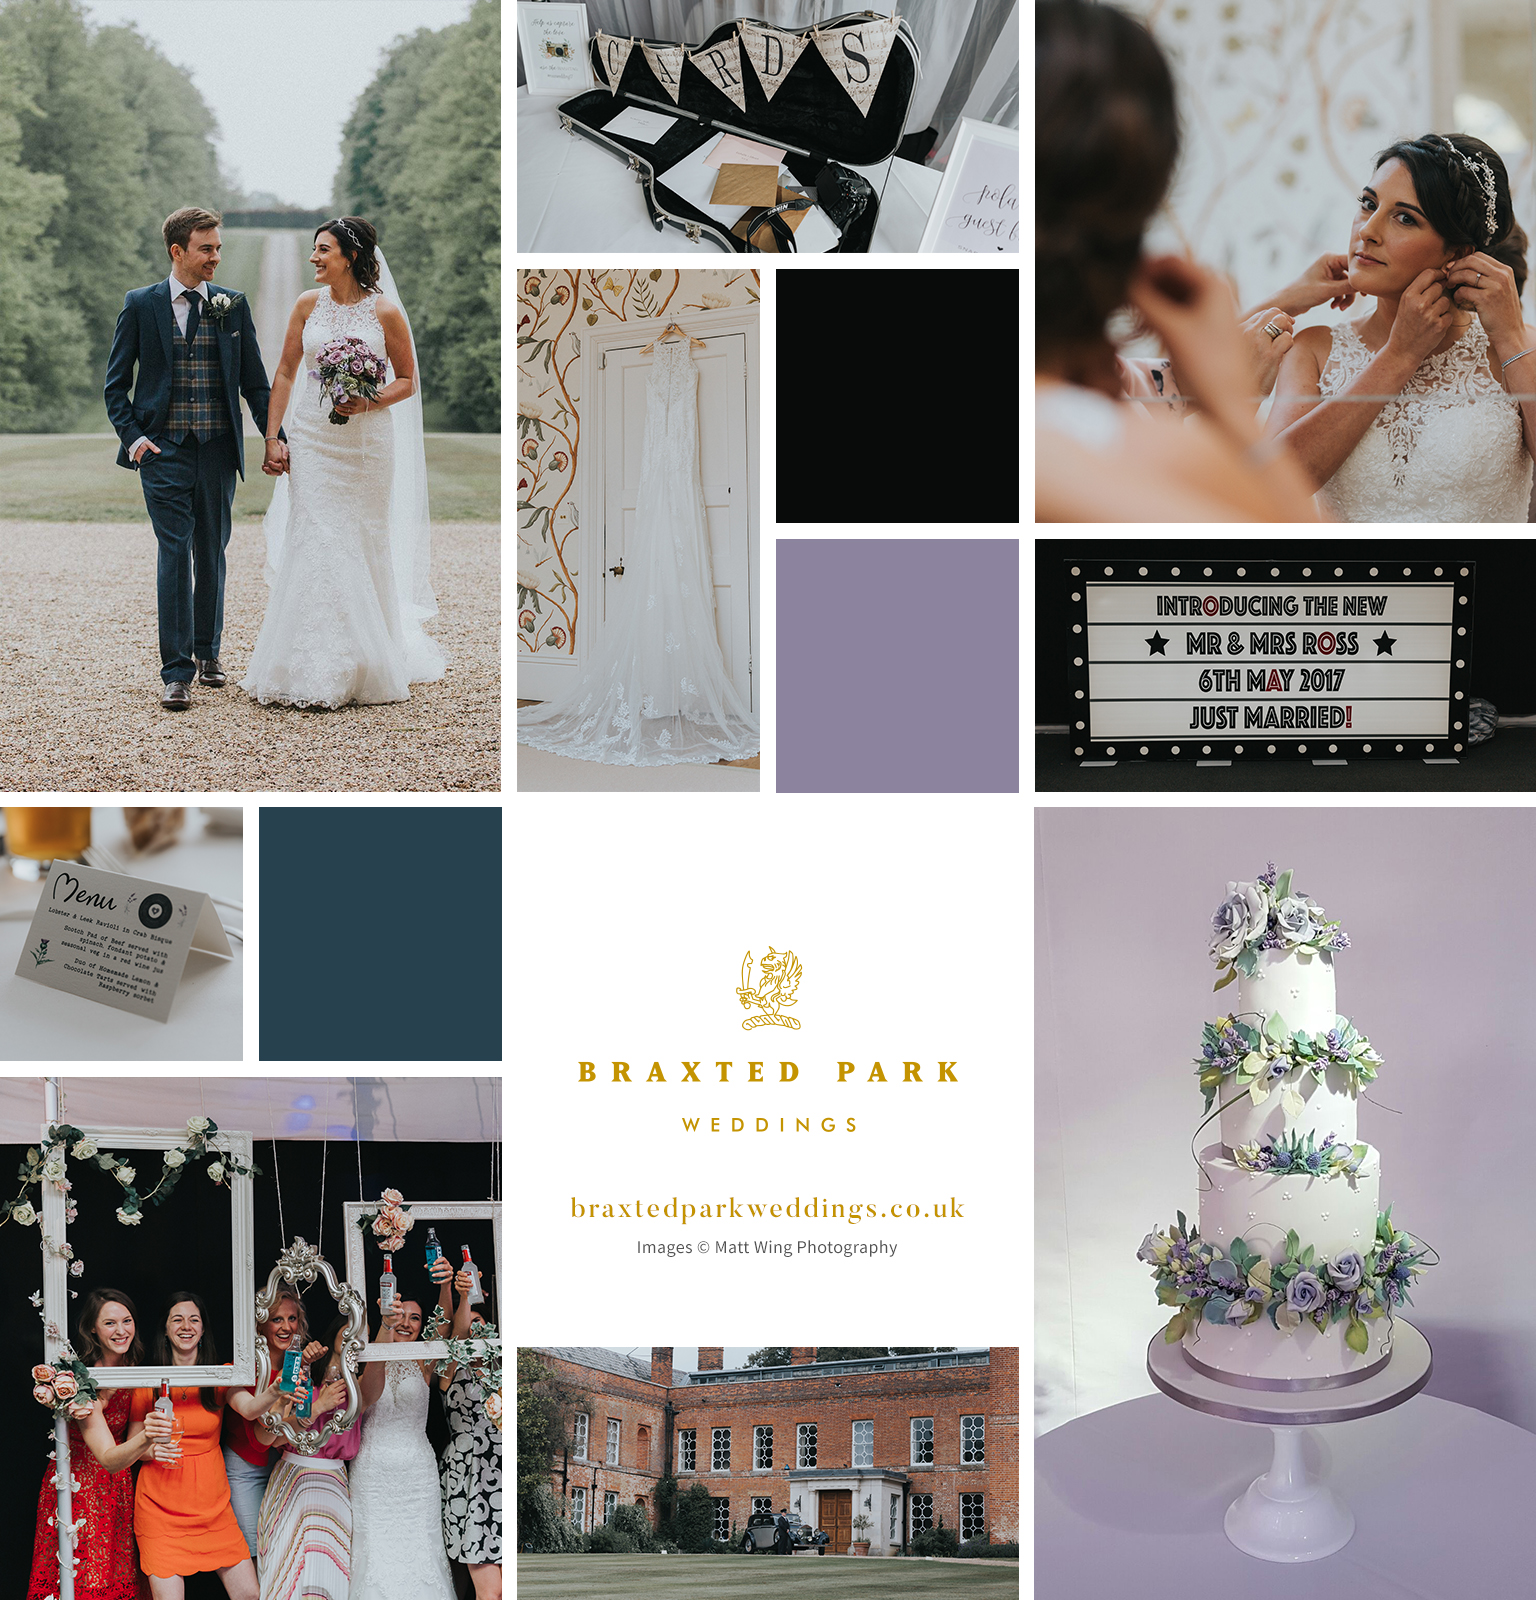 Rachelle and Adrian's real life wedding at Braxted Park